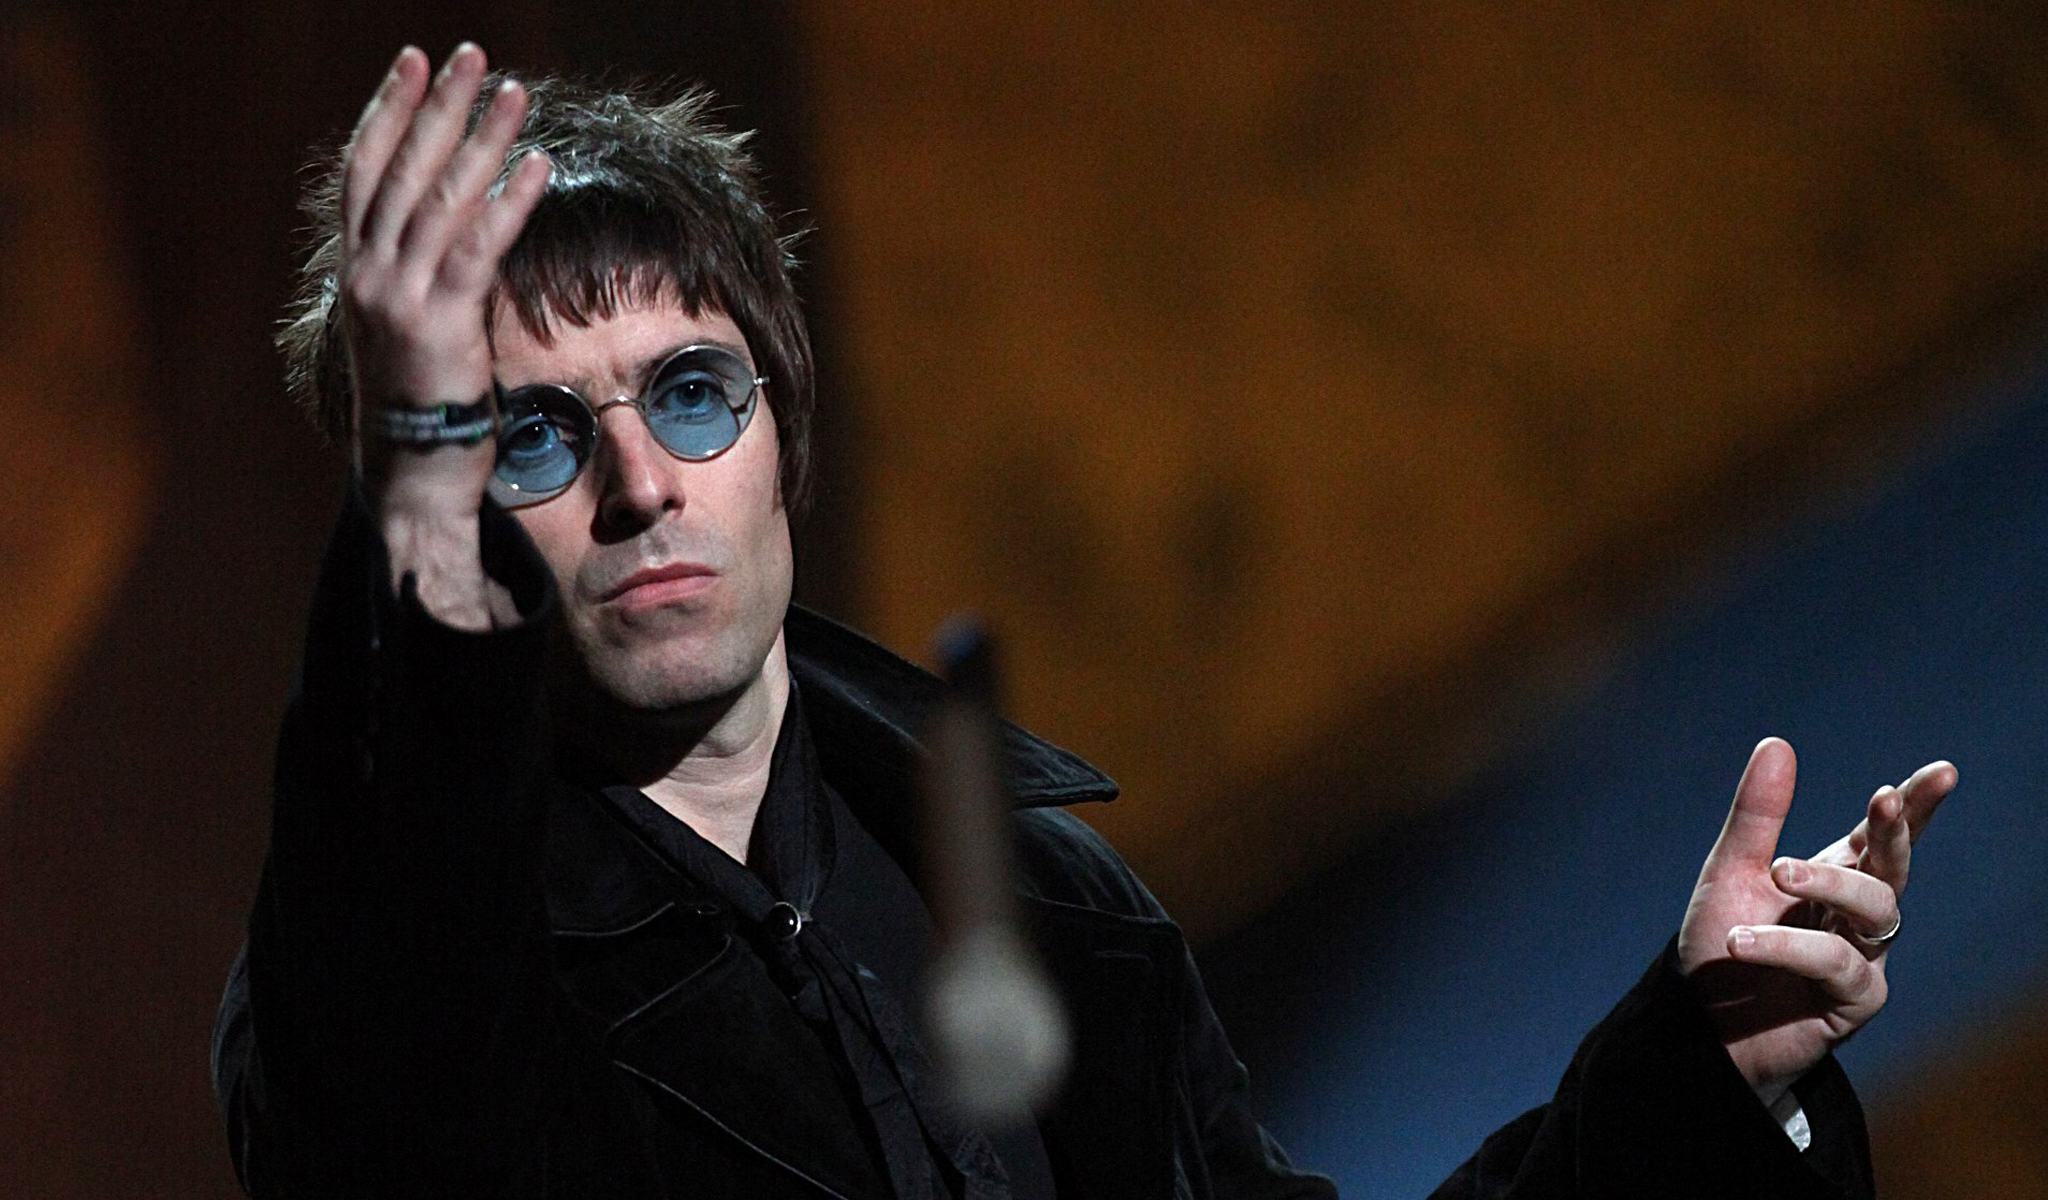 Liam Gallagher BRIT Awards 2010